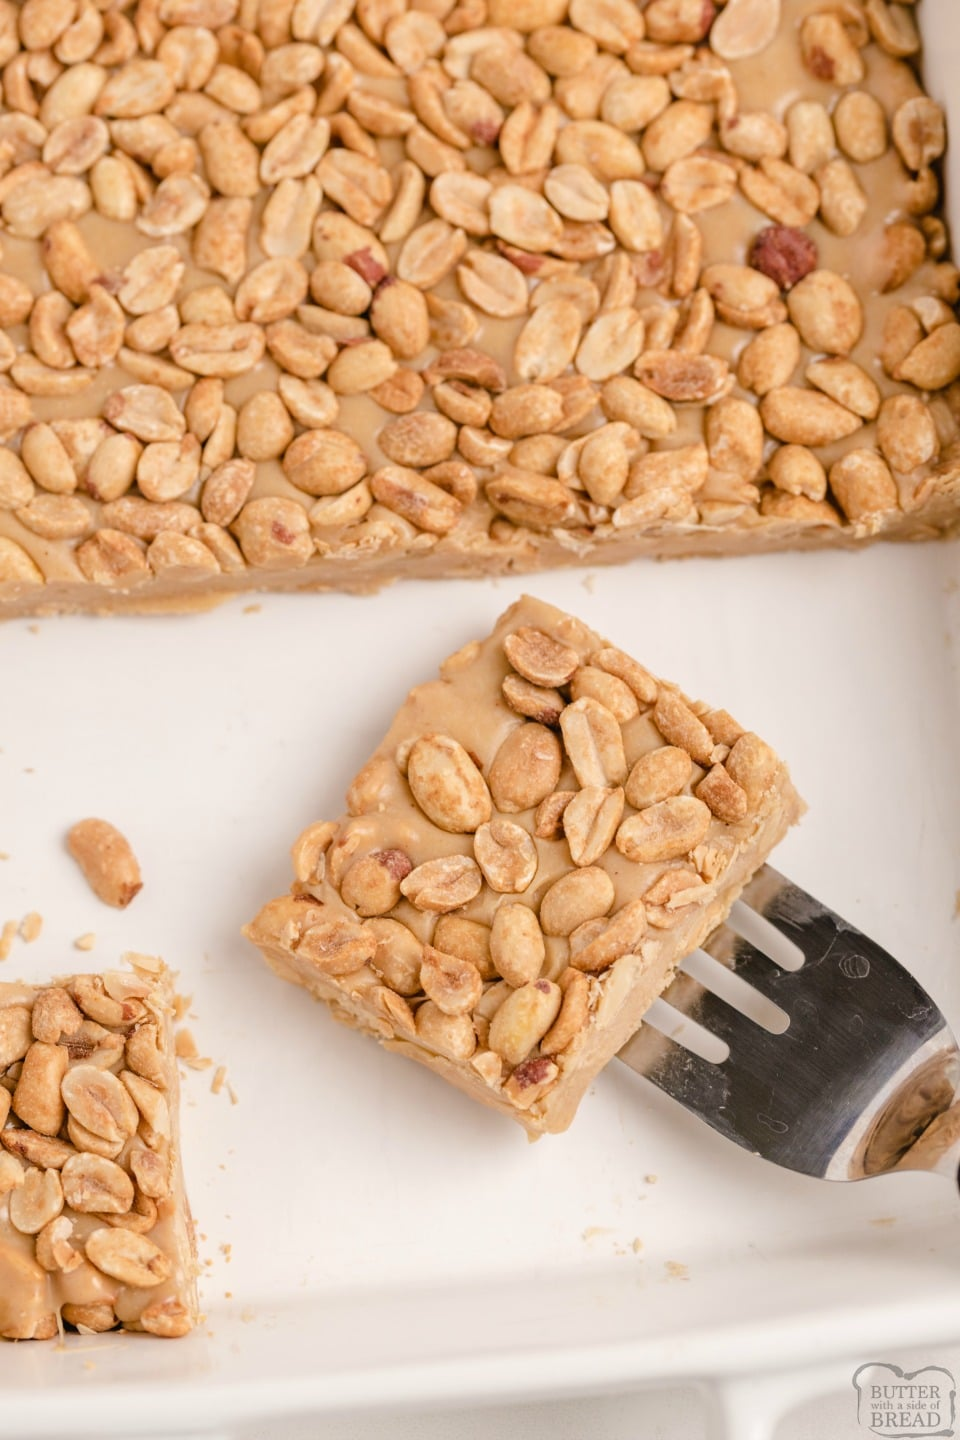 Salted Nut Rolls are an incredible homemade version of the candy bar! Our Easy Salted Nut Roll Bar Recipe is made with roasted peanuts & and peanut butter nougat for a fun & delicious homemade treat!